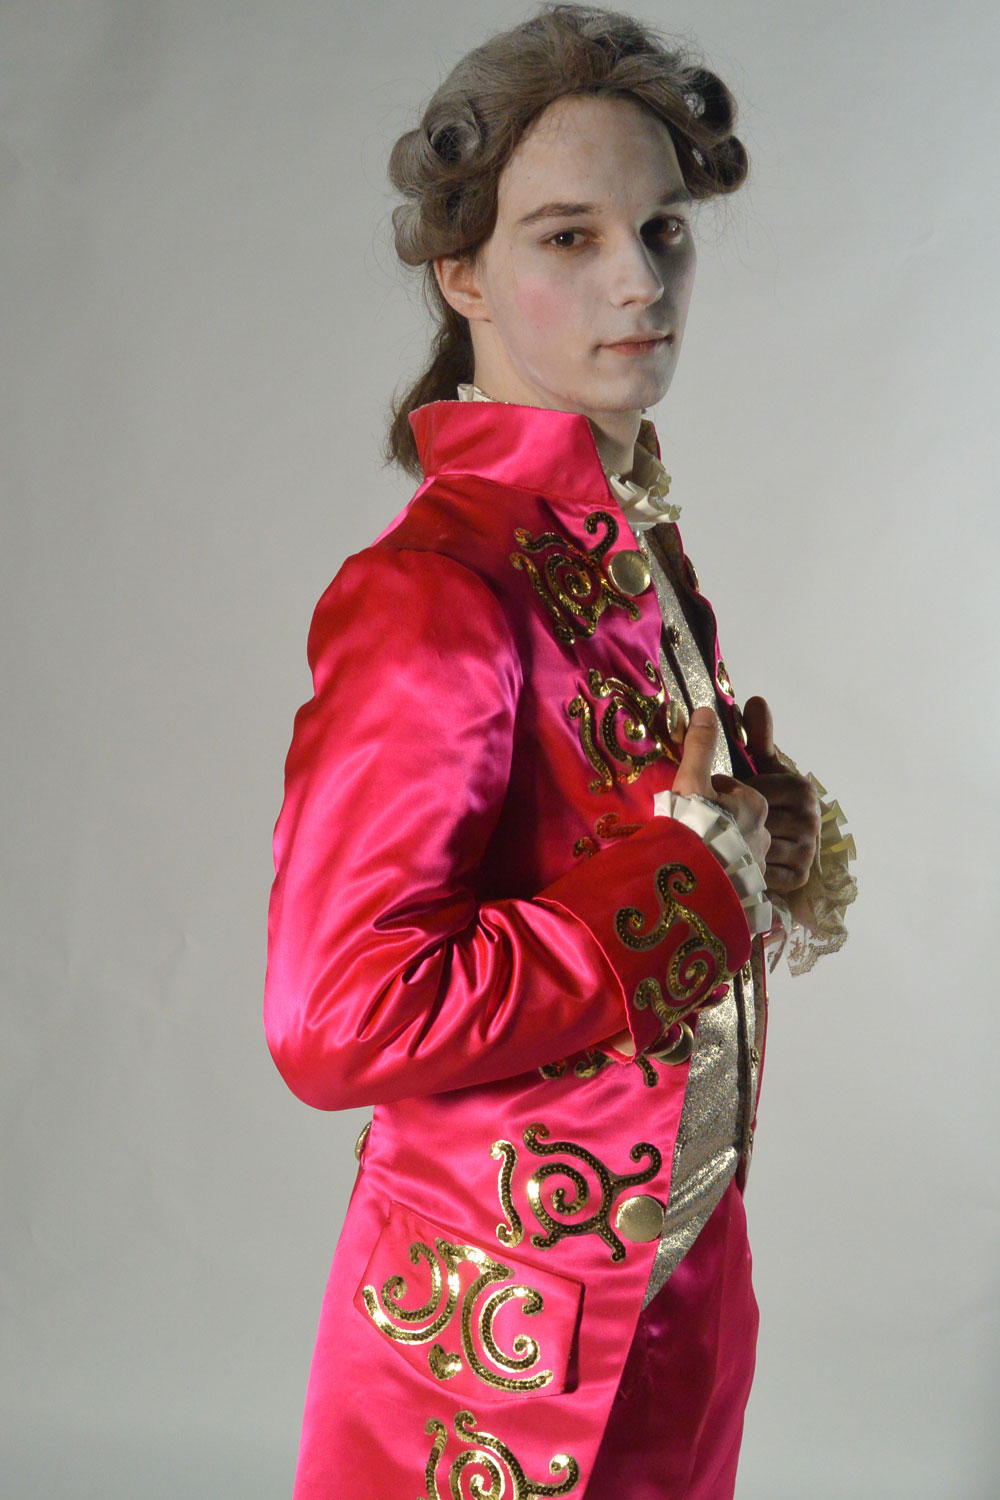 Costume design by Lena Holthaus